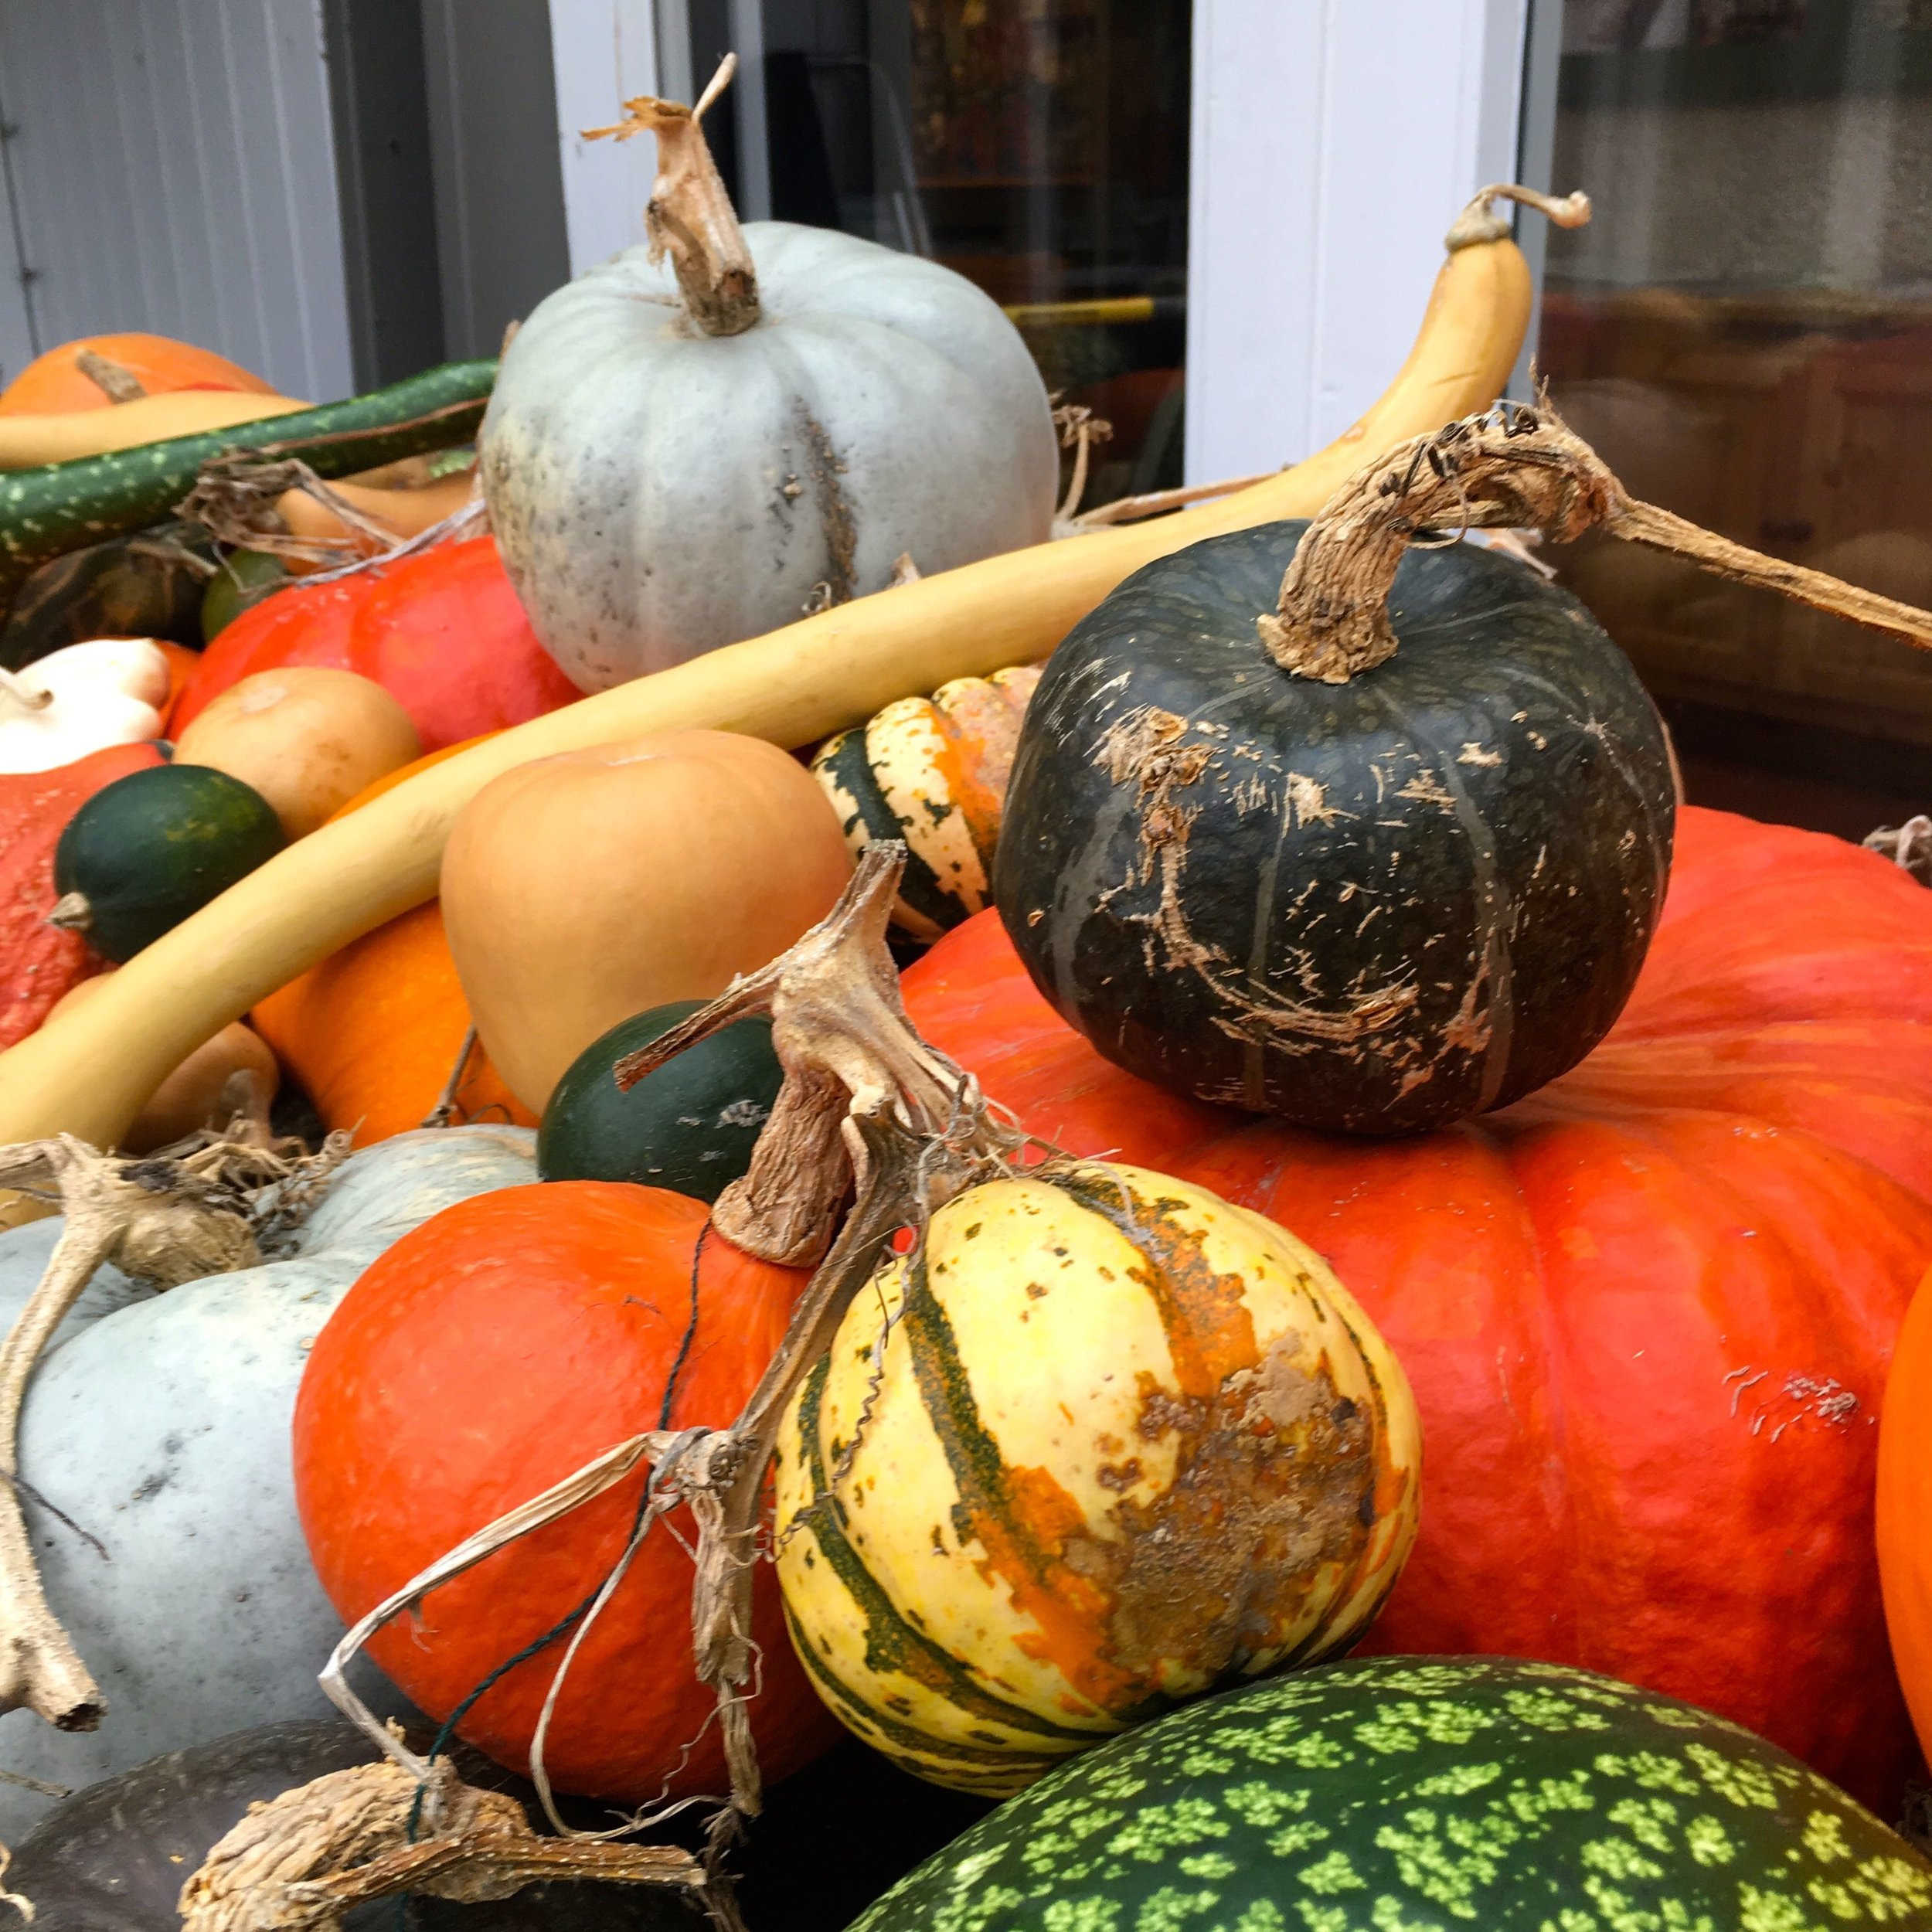 pumpkins of all shapes and sizes